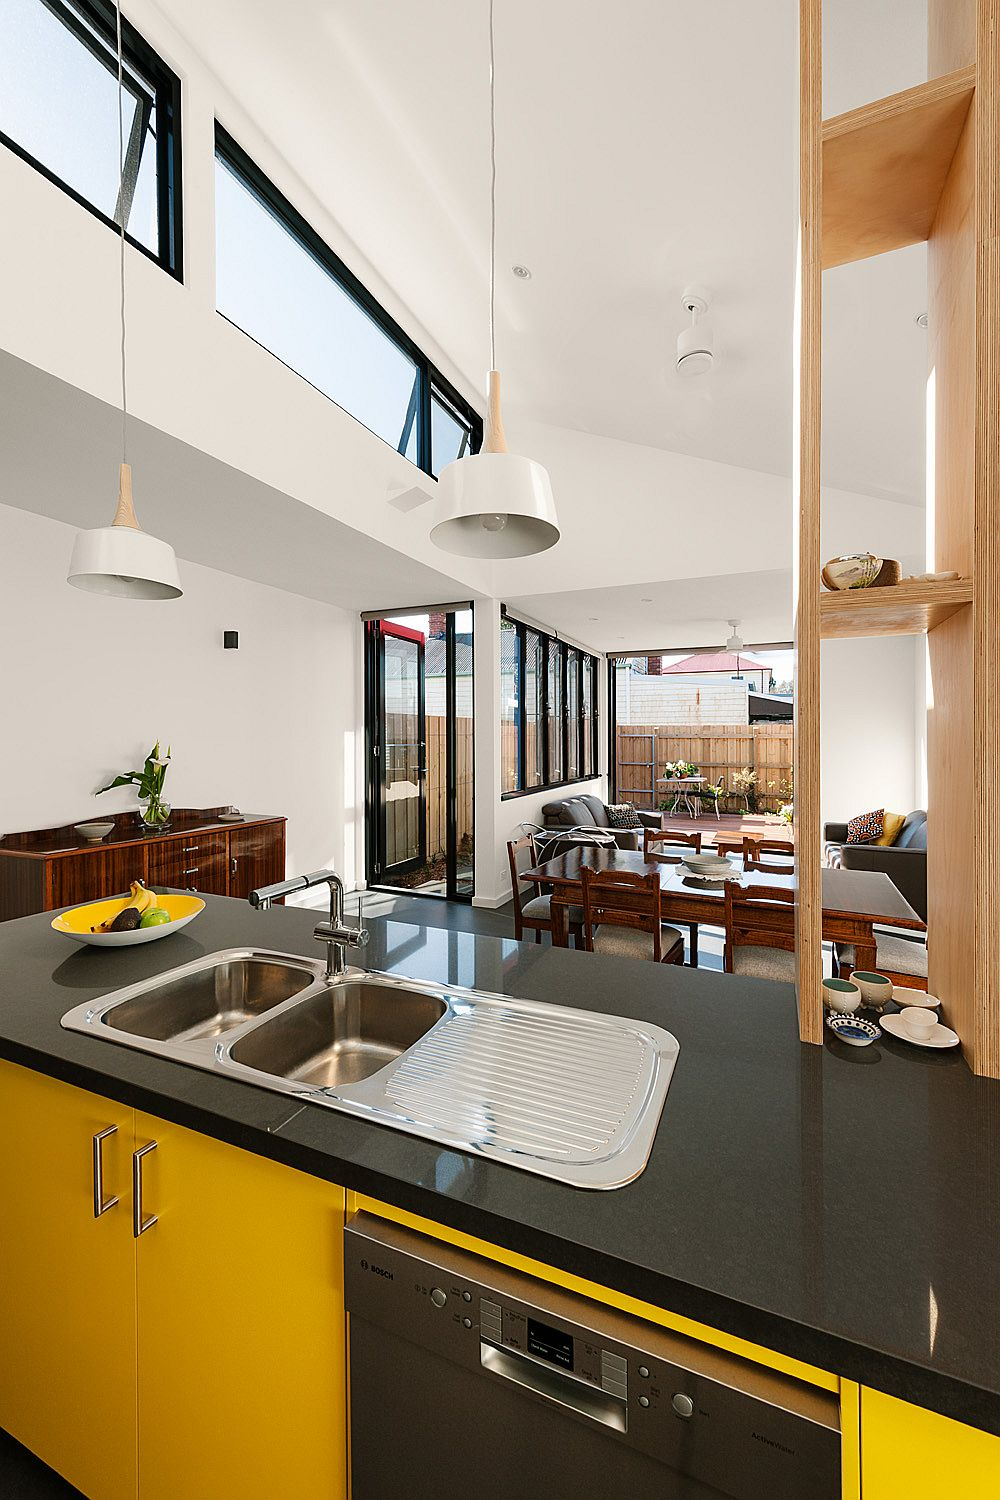 Clerestory-windows-bring-ample-natural-light-into-the-new-kitchen-and-living-area